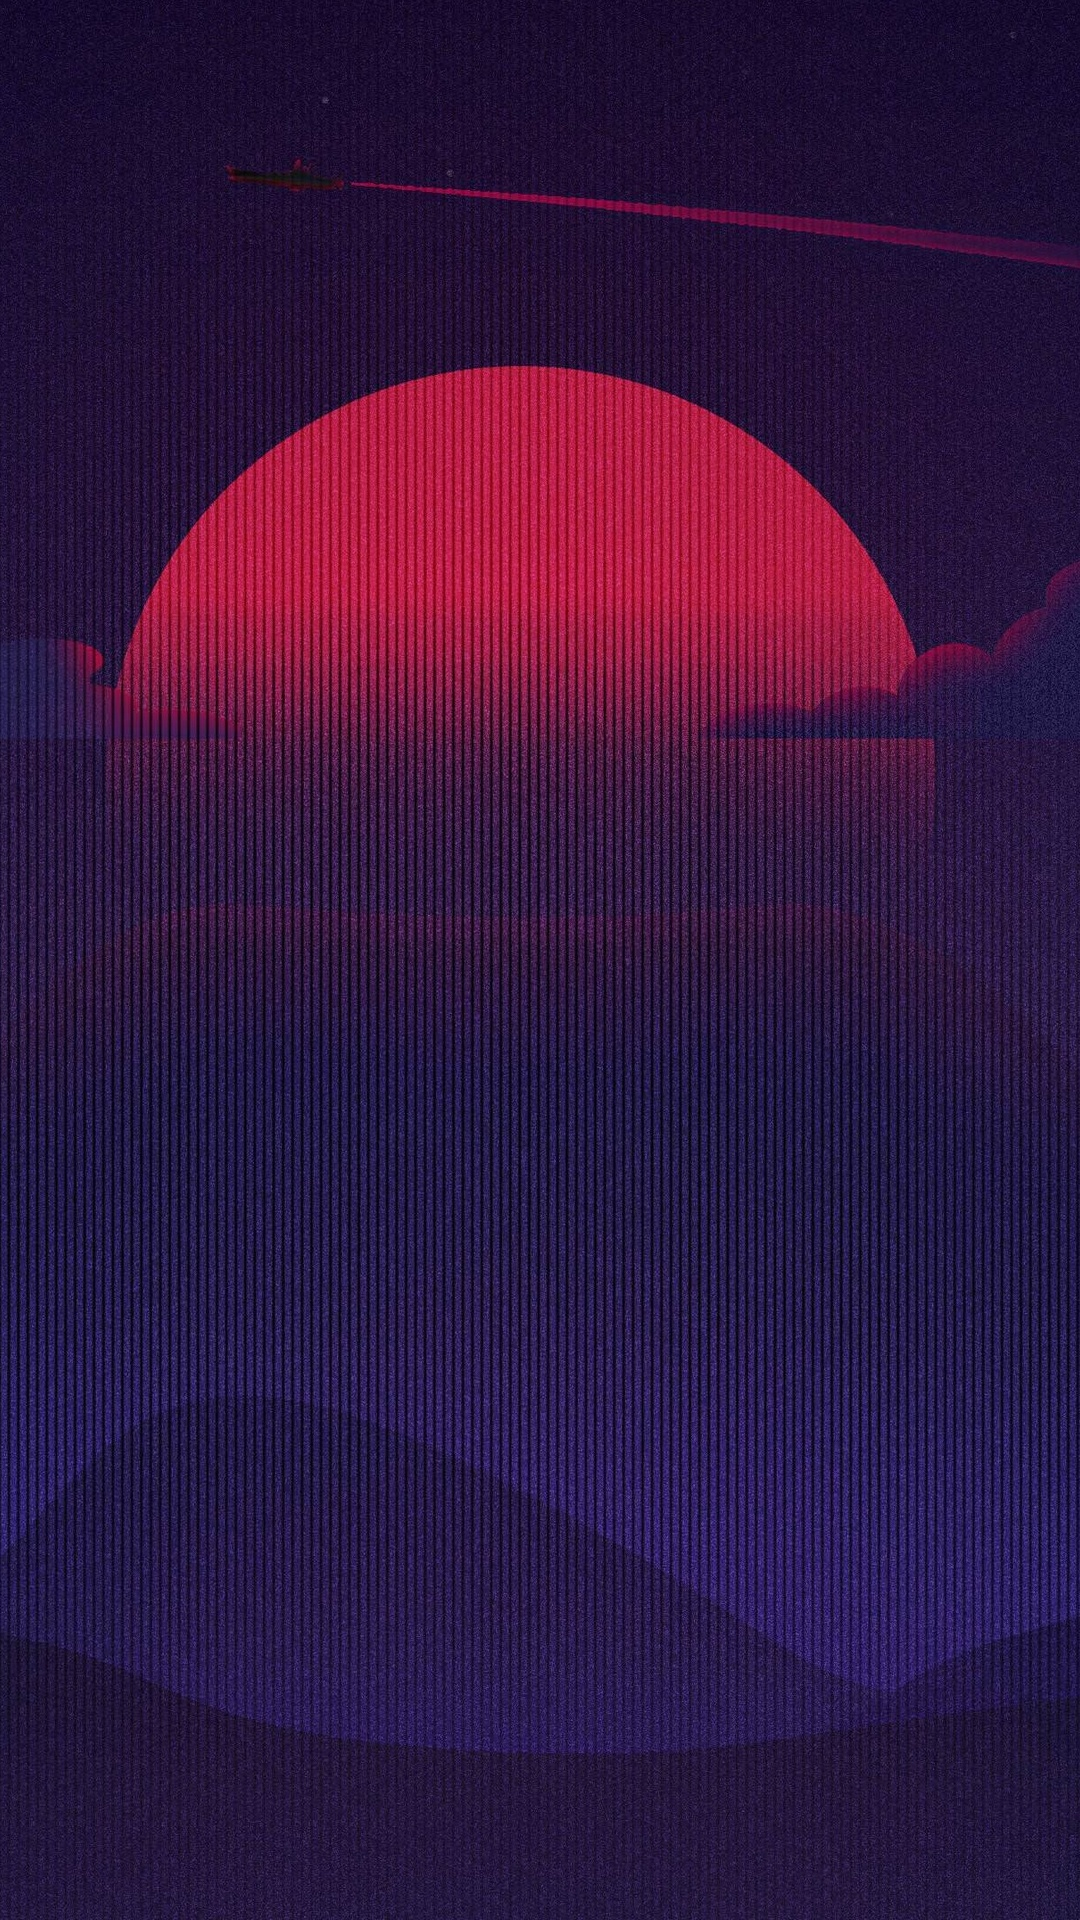 8-bit-sunrise-mountains-artwork-4k-fg.jpg